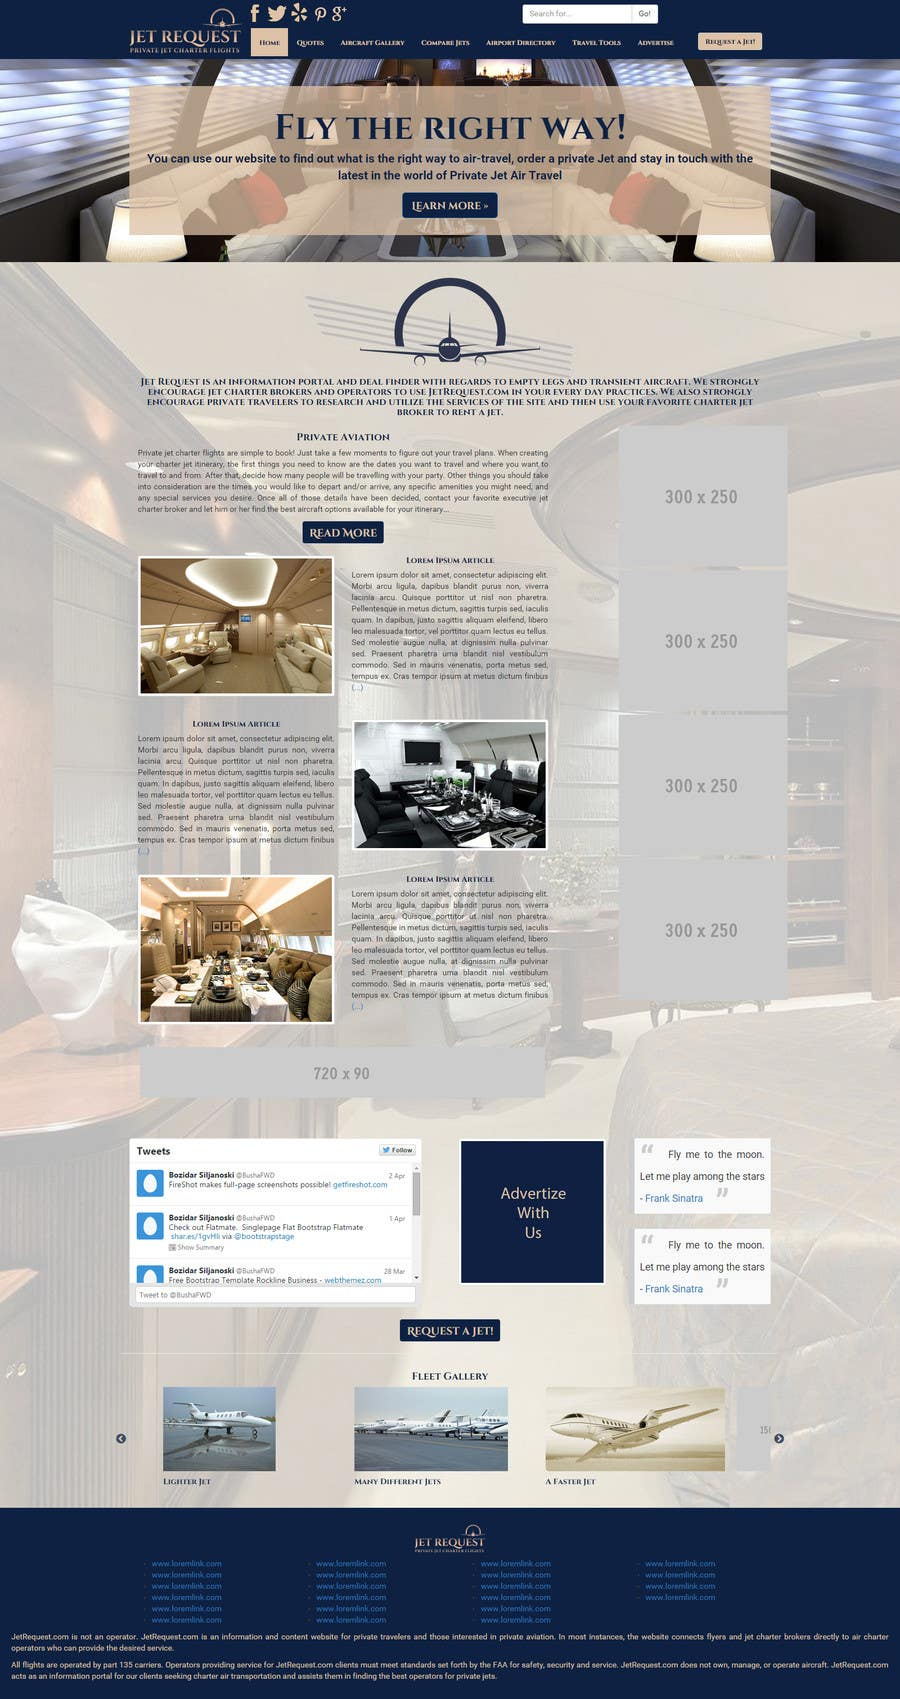 Konkurrenceindlæg #                                        20                                      for                                         Design a Website Mockup for Private Jet company